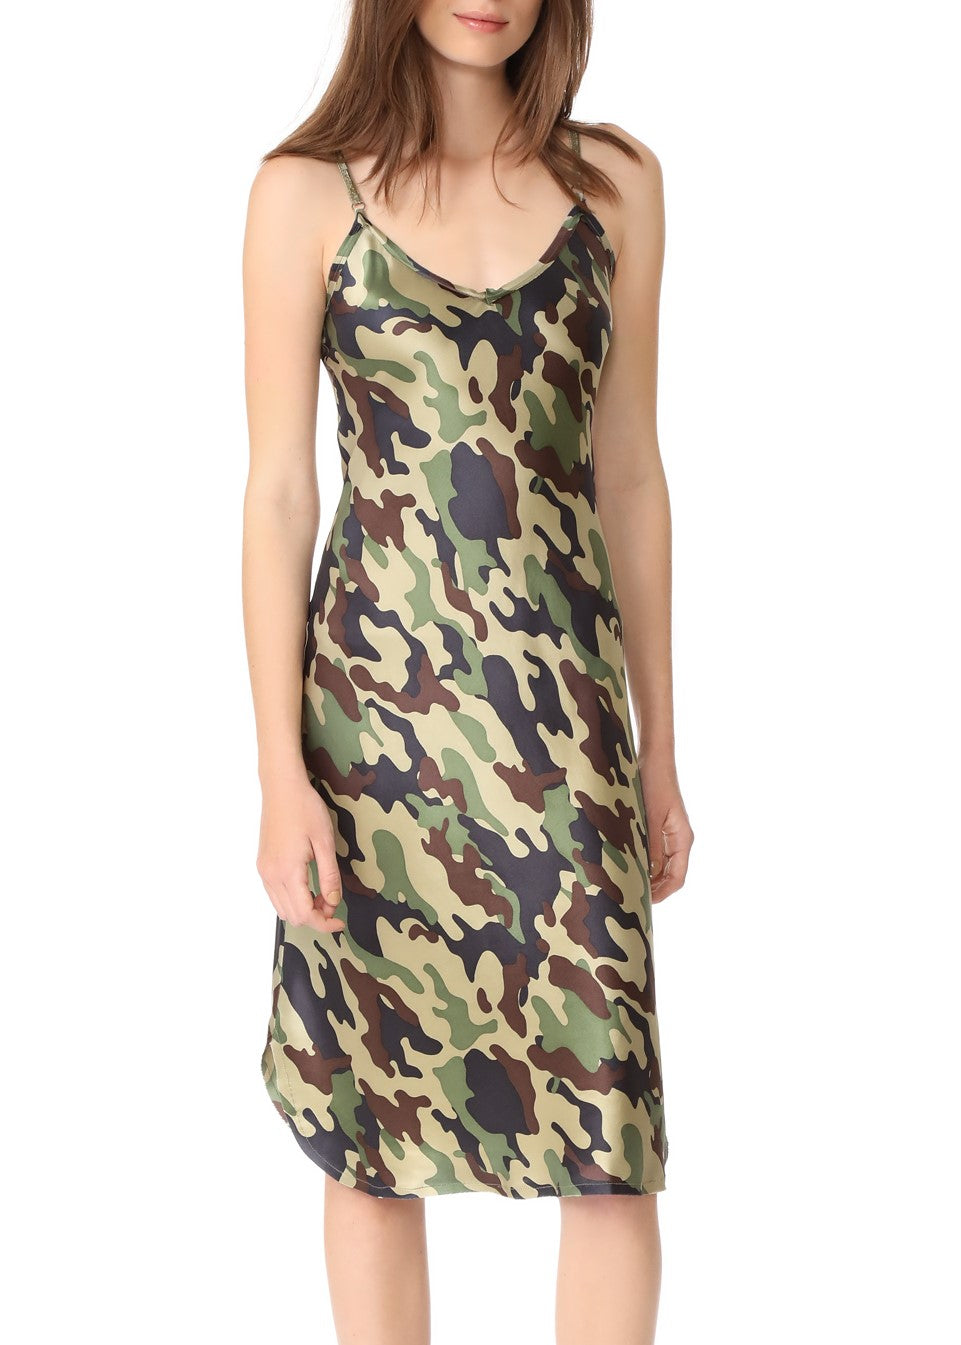 Nili Lotan silk camo dress